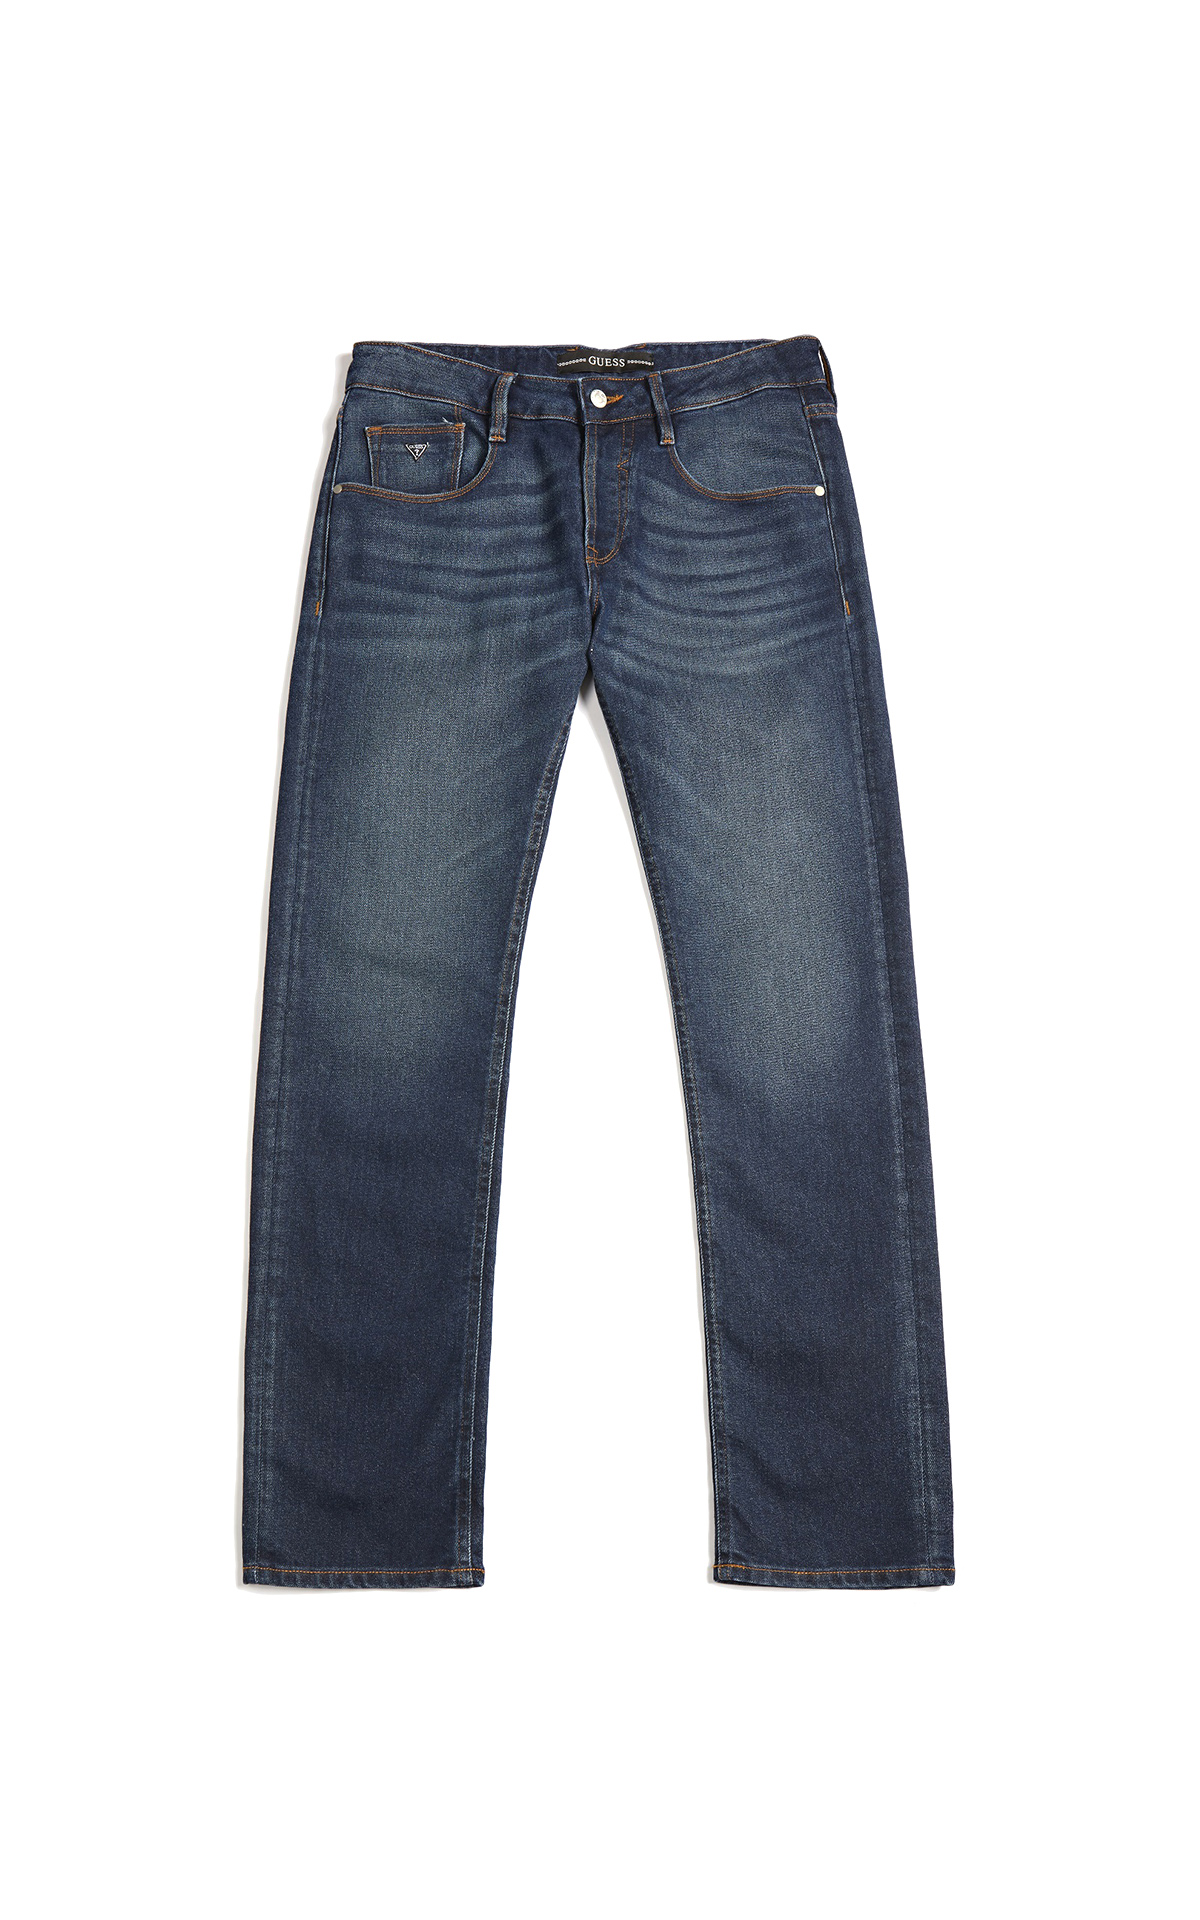 Denim jenas for man Guess